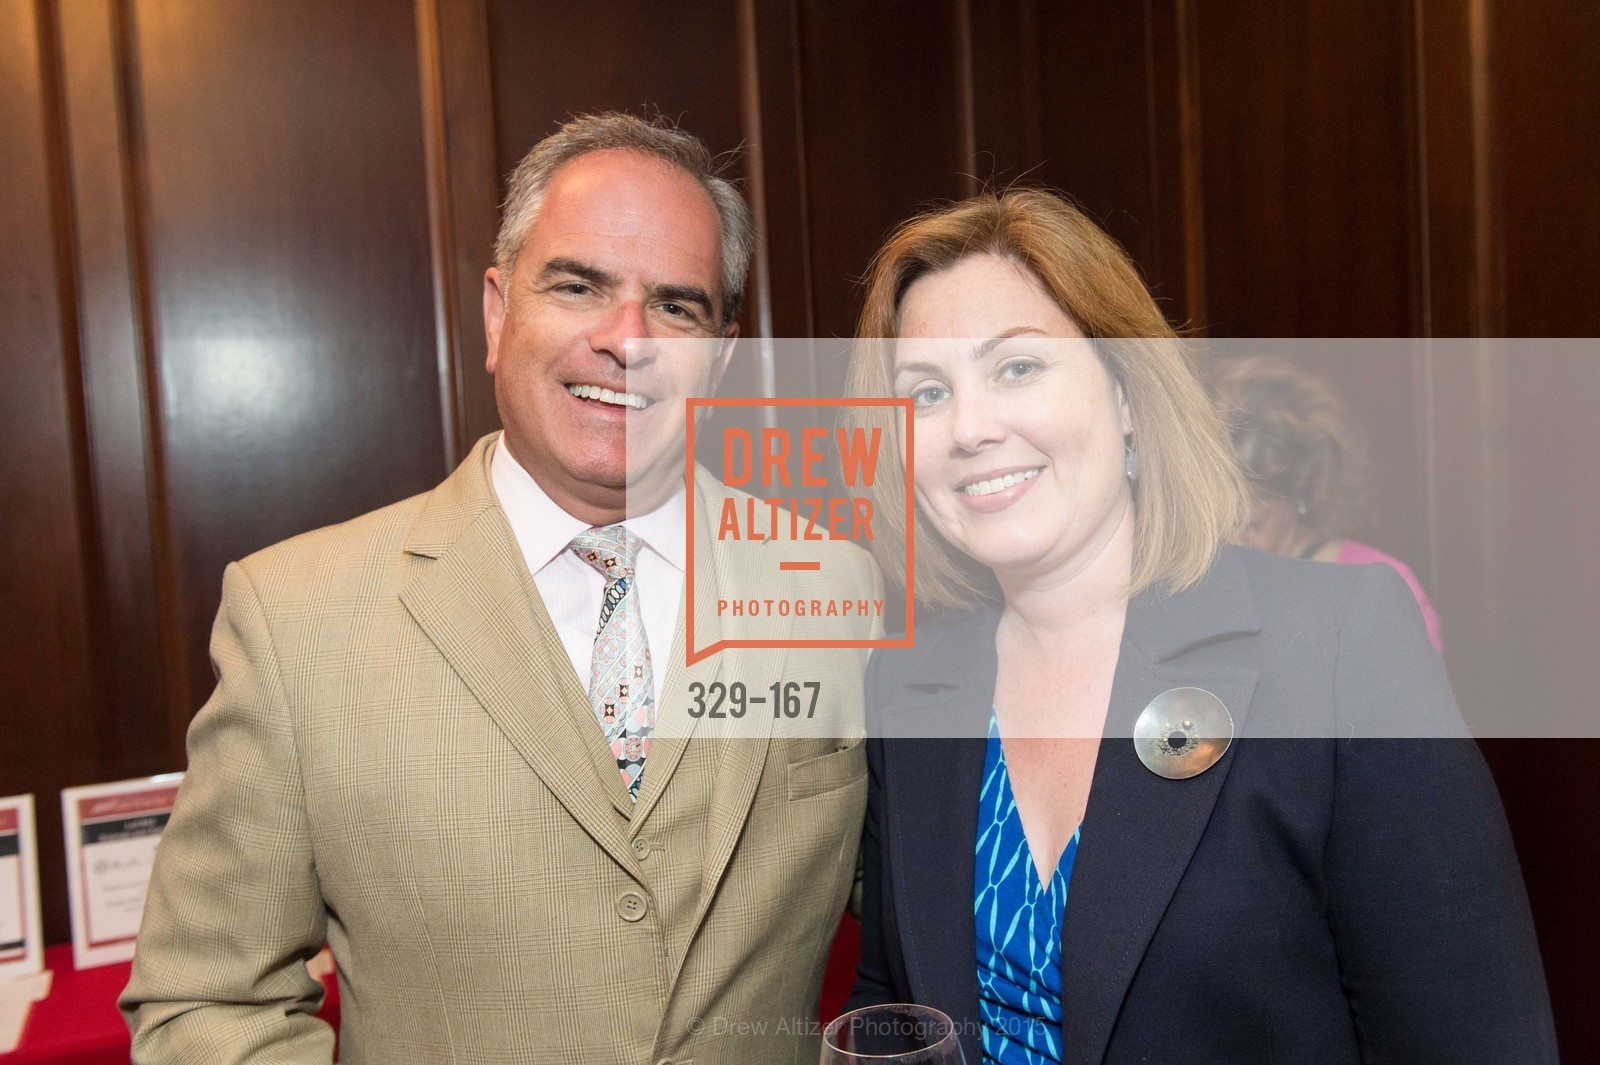 Todd Wynne-Barry, Jennifer Lande, Dress for Success San Francisco Hosts the 10th Annual